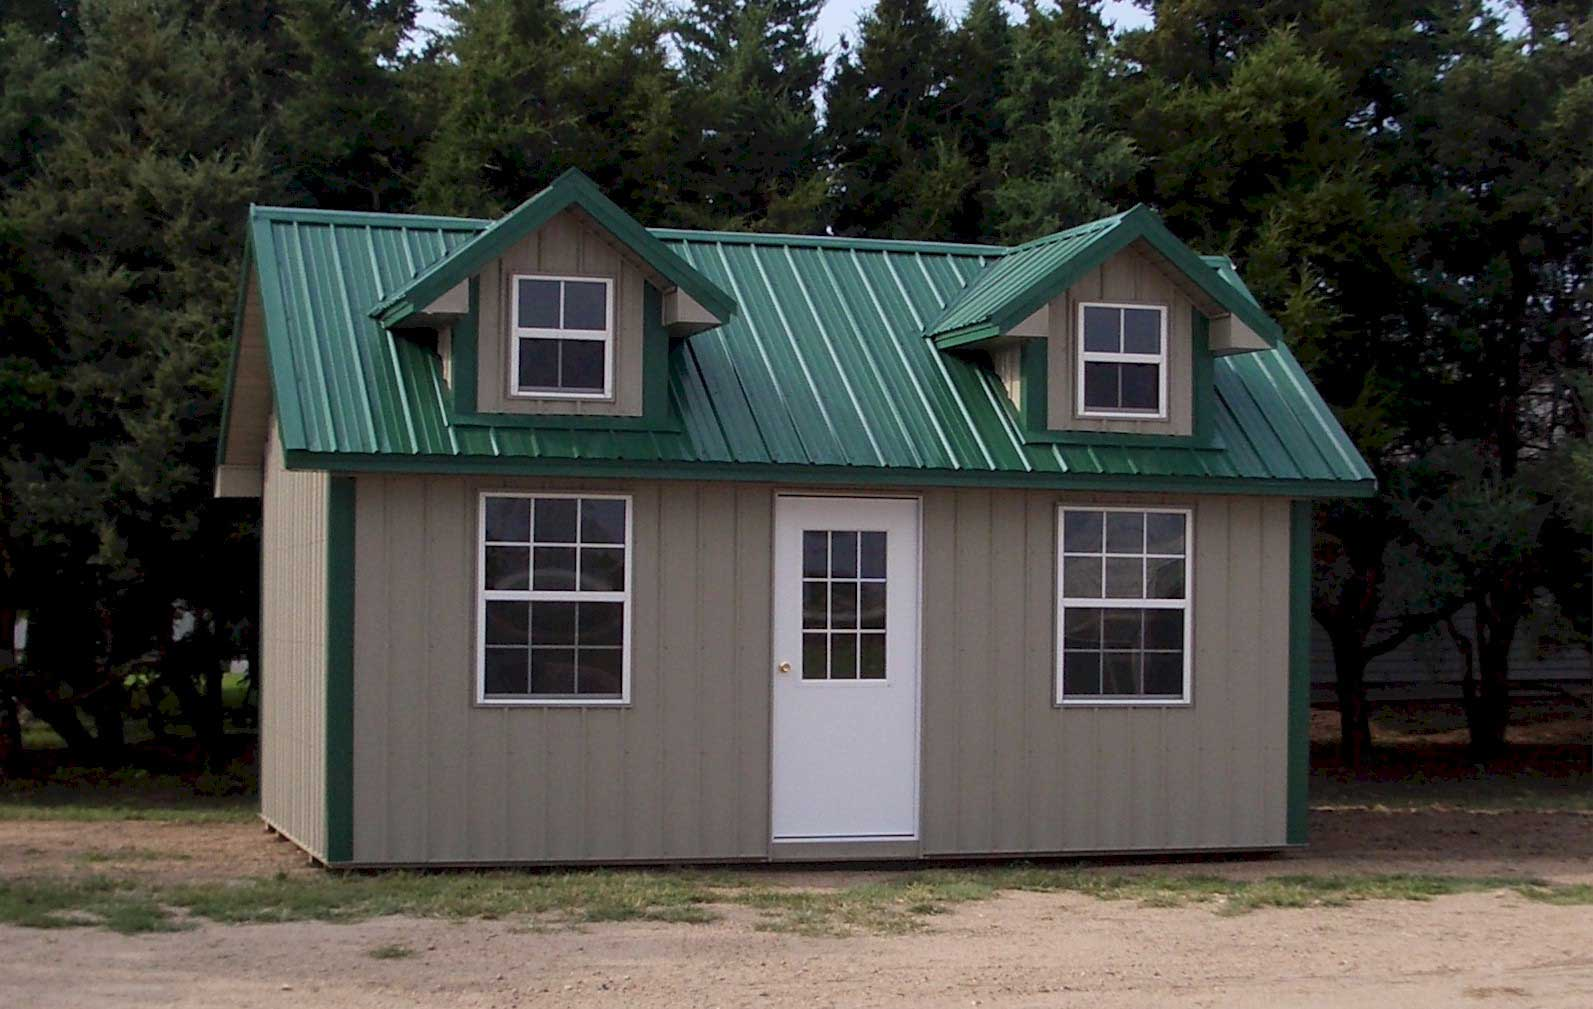 Steel-sided cabins for sale in Wichita Kansas